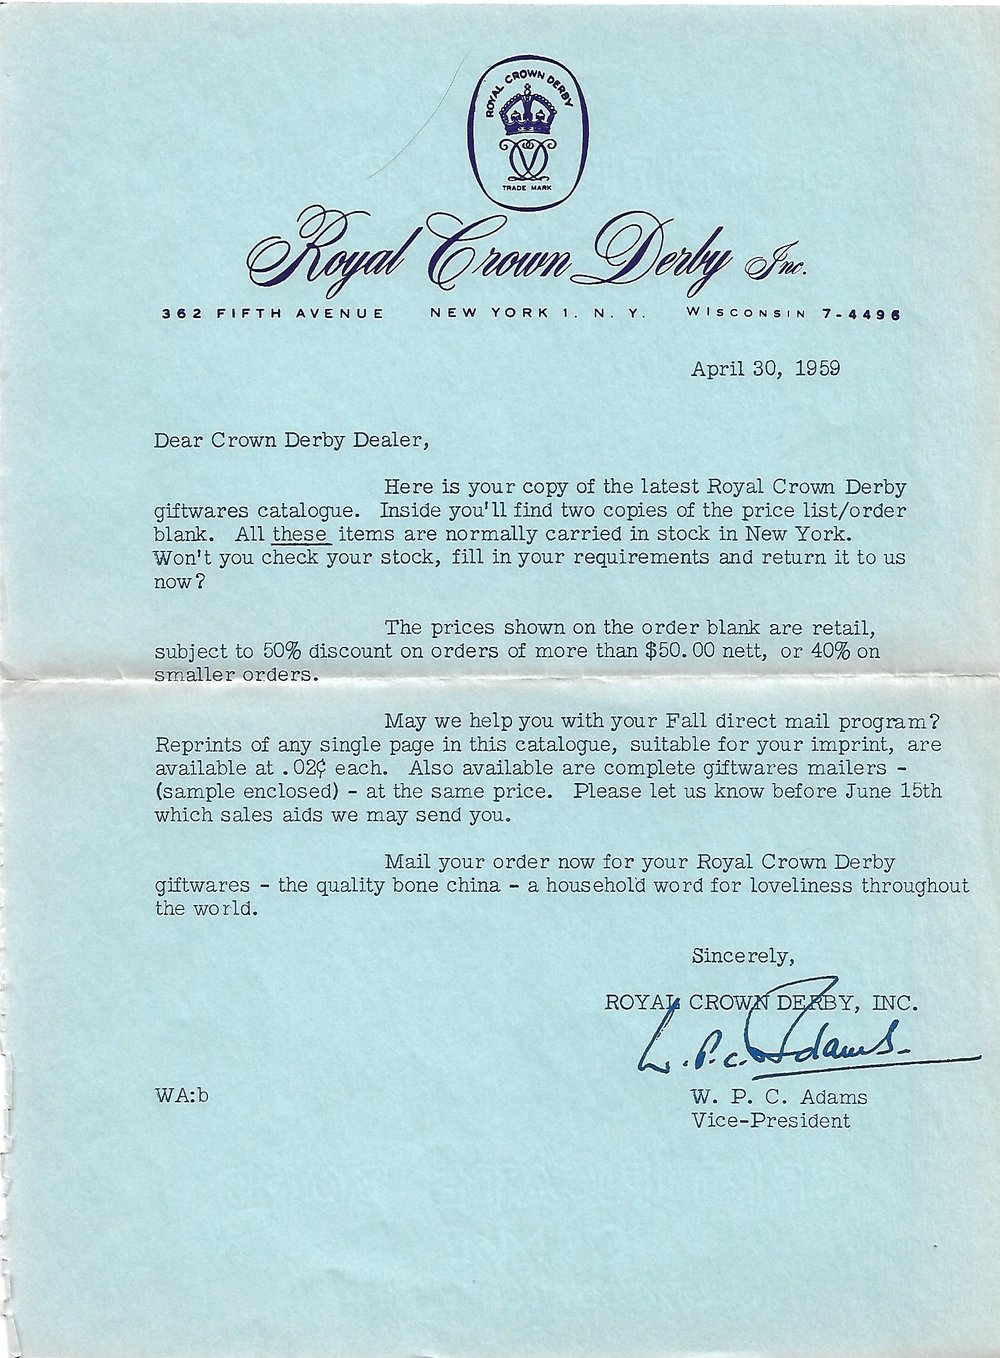 royal-crown-derby-inc-letter-from-the-vice-president